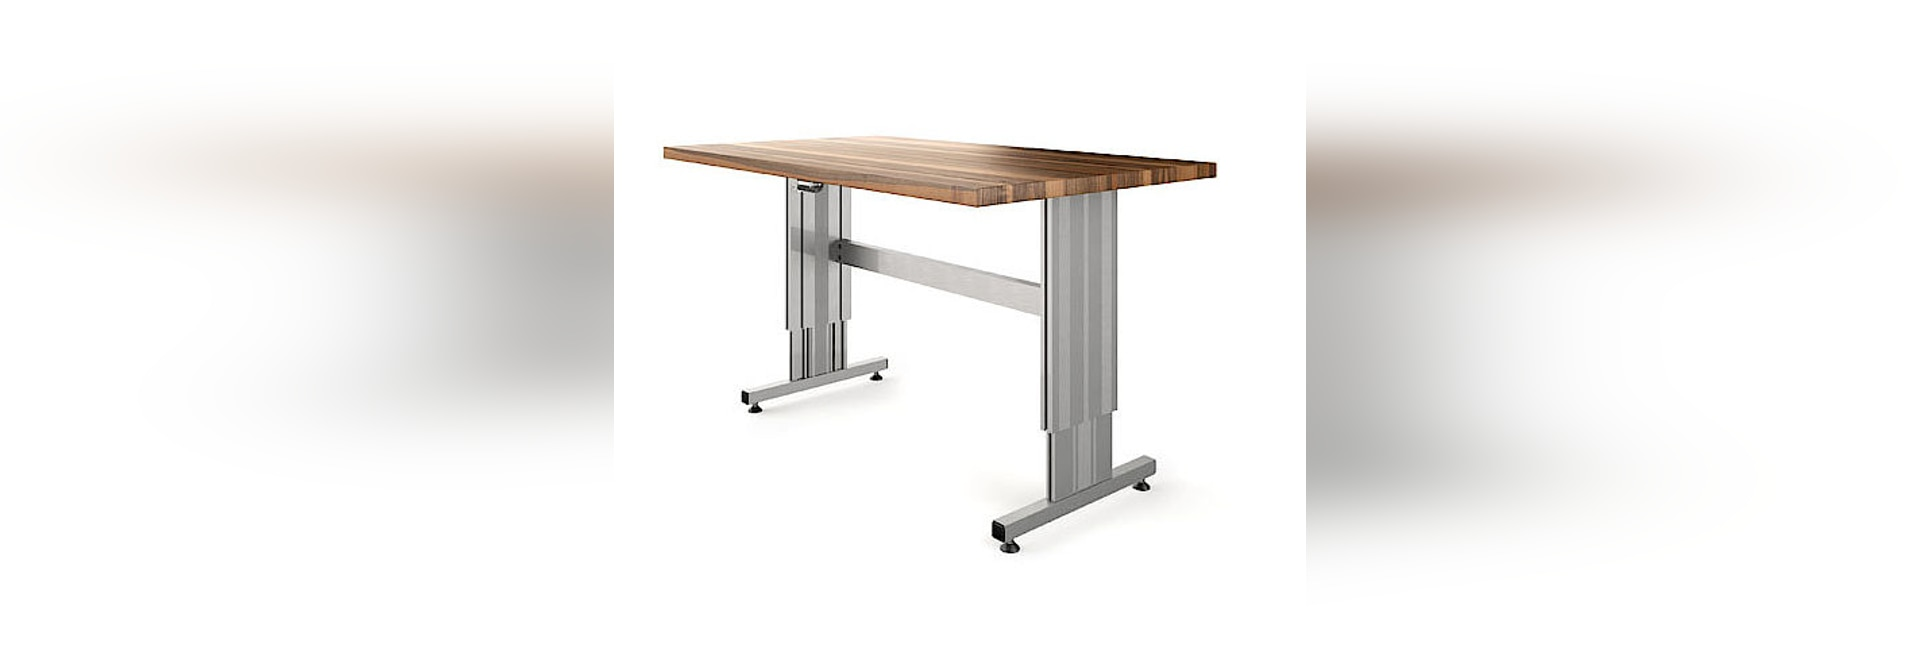 NEW: Table Height Adjustment Lifting System By ErgoSwiss